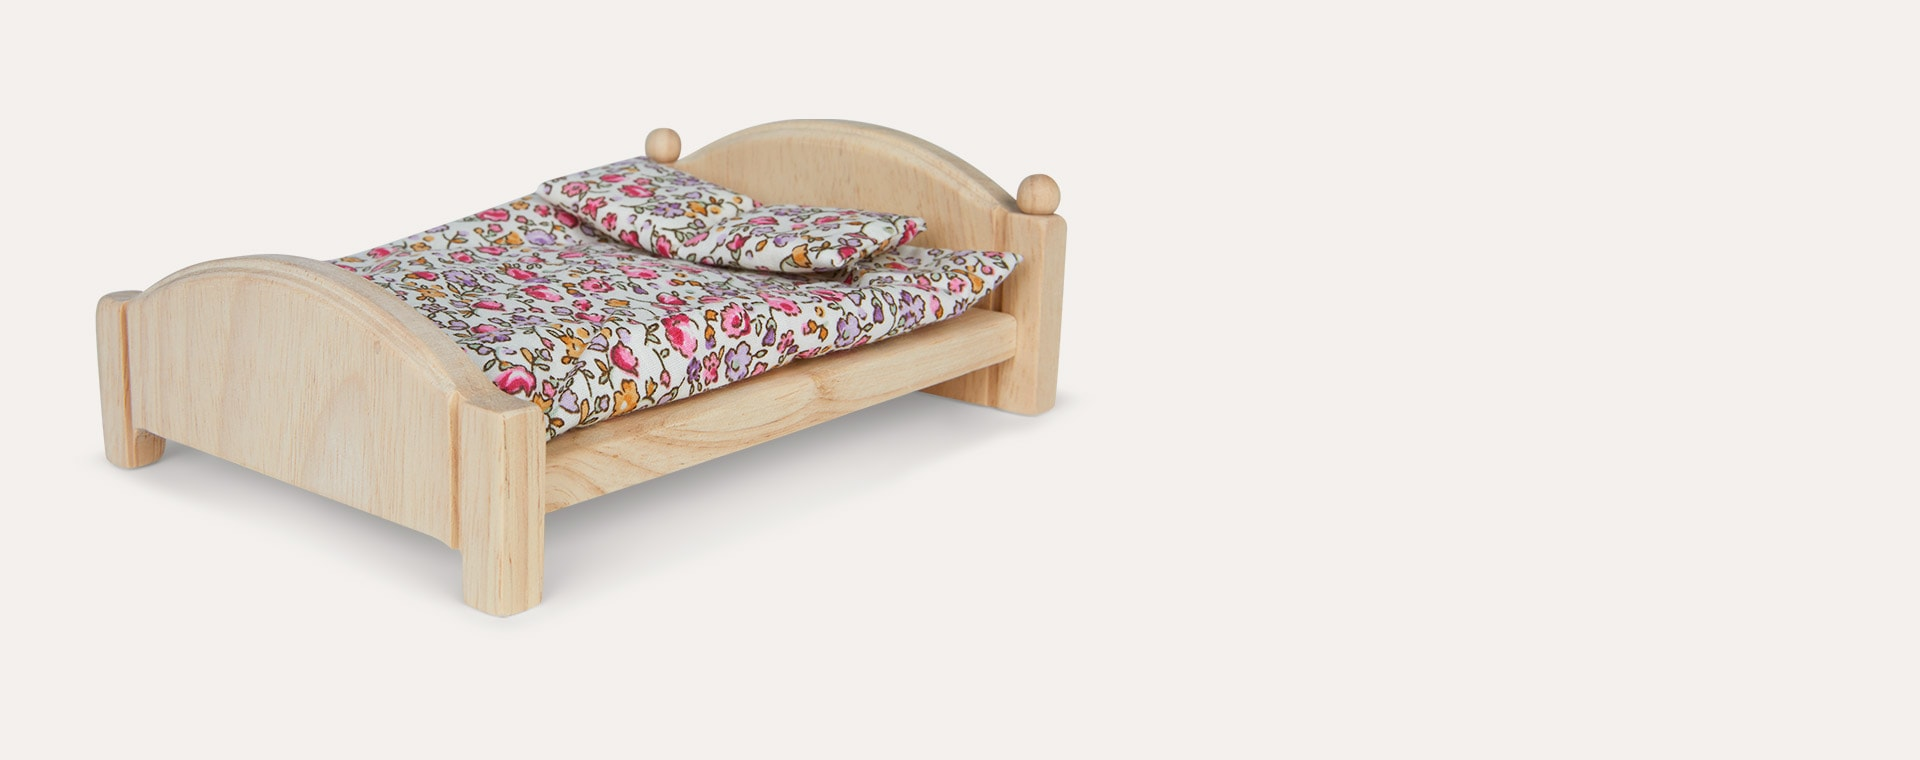 Neutral Plan Toys Classic Bedroom